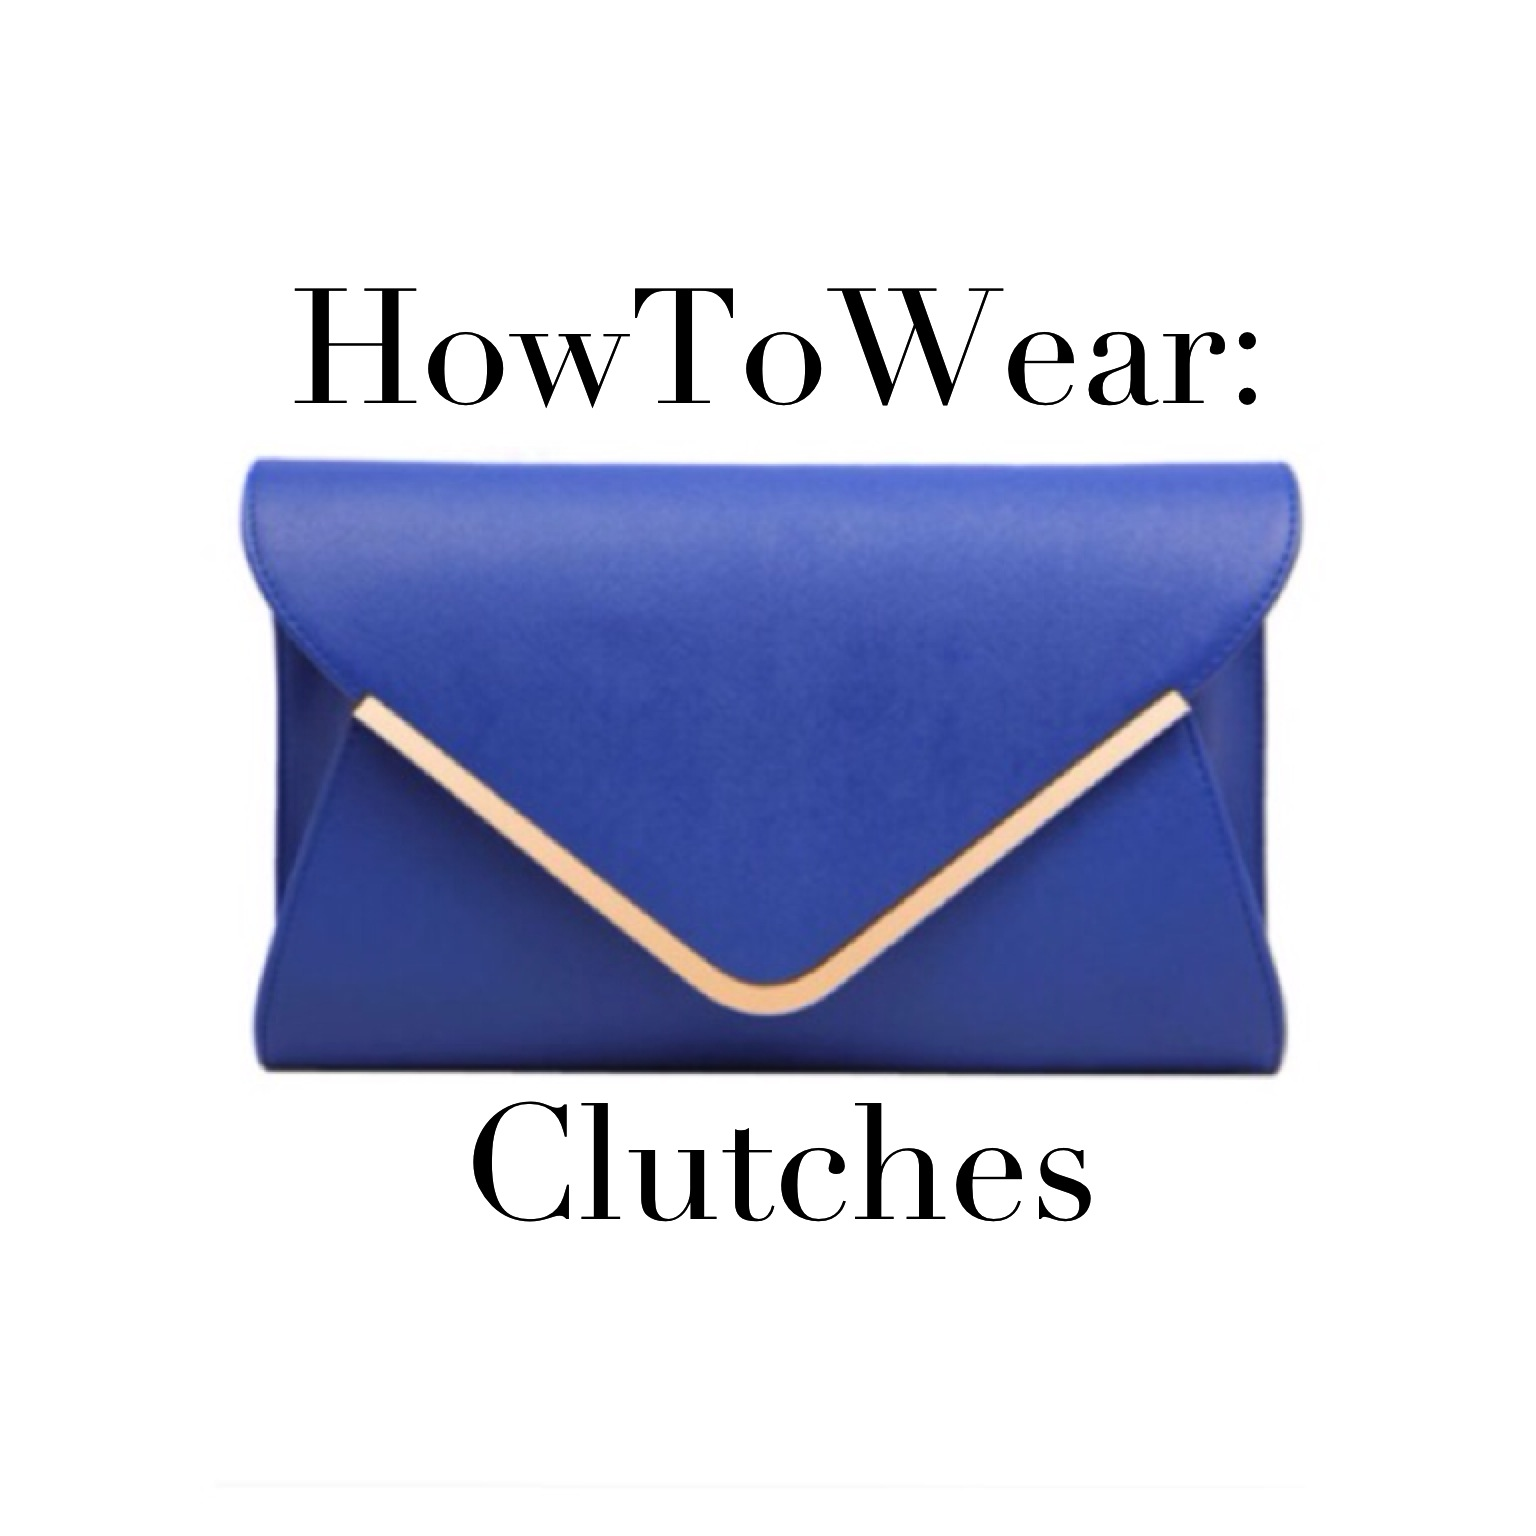 How To Wear: Clutches